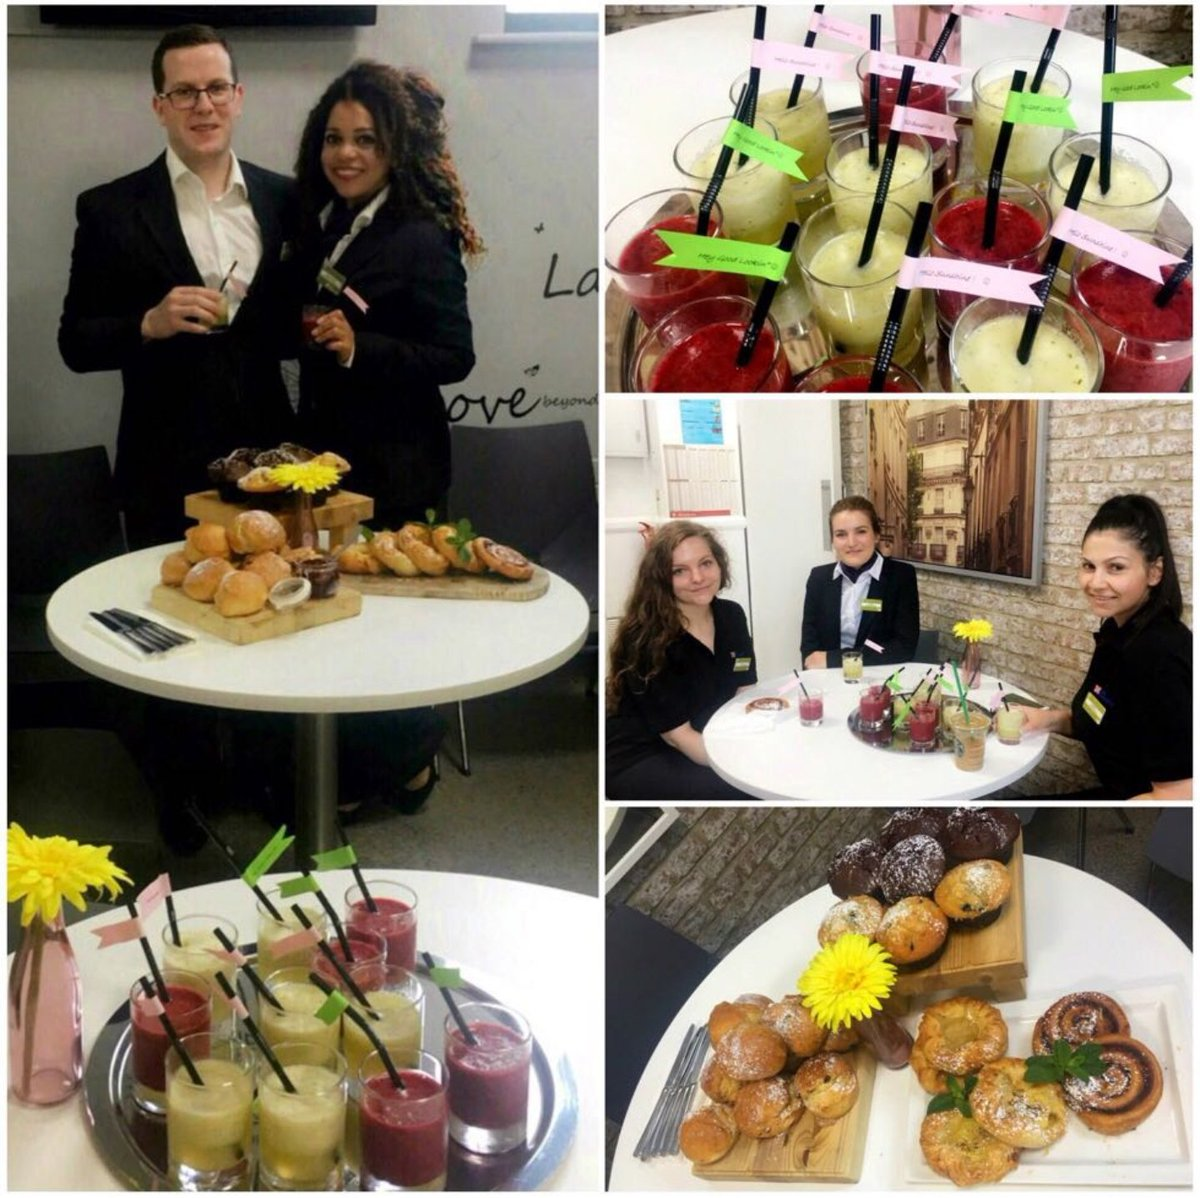 Hilton Garden Inn Custom House On Twitter Power Morning With Our Team Members Cause Breakfast Is The Most Important Meal Of The Day Brighthearted Hiltongardeninn Https T Co F4honryx67